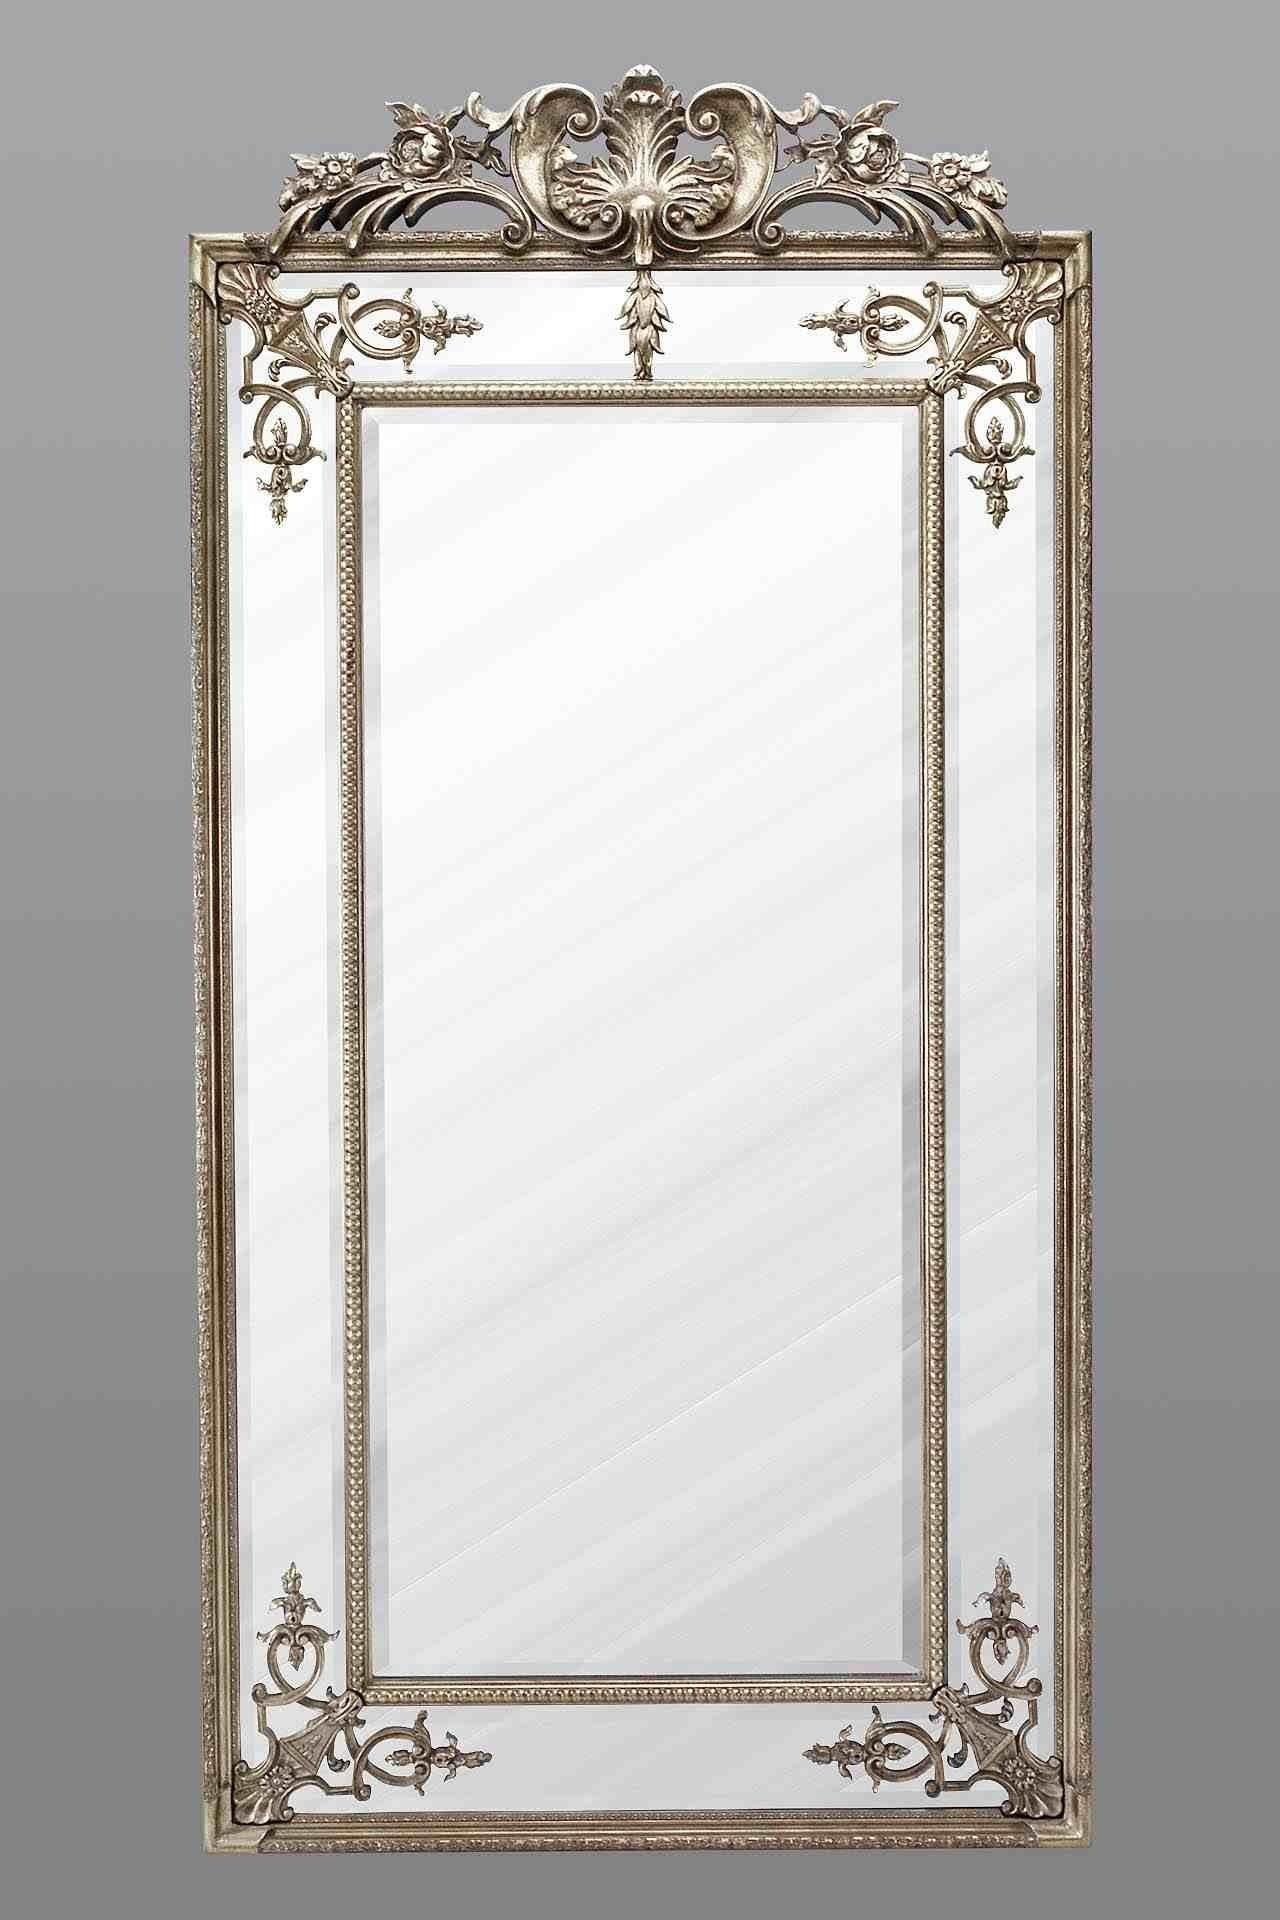 Full Length Silver Mirror 111 Fascinating Ideas On Silver Gold Inside Gold Full Length Mirror (Image 10 of 20)